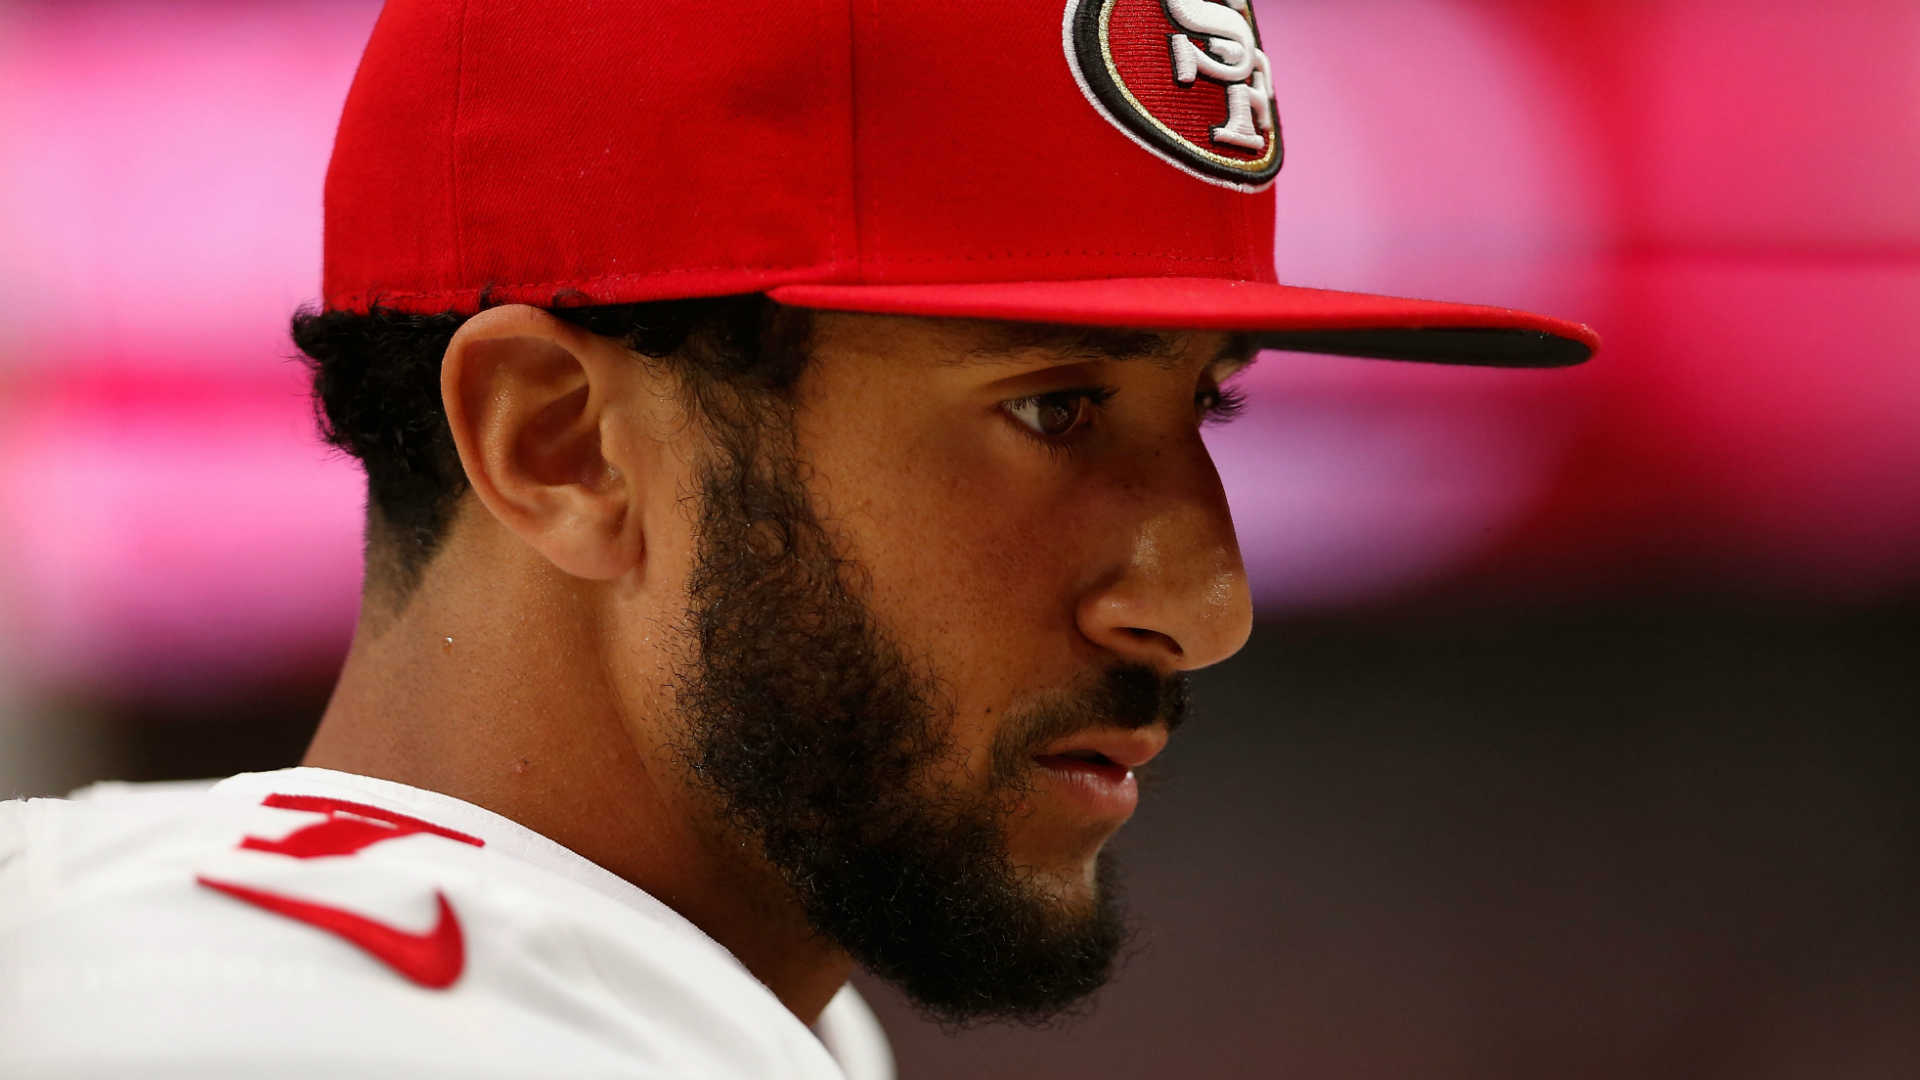 browns reportedly offer third round pick for colin kaepernick browns reportedly offer third round pick for colin kaepernick nfl sporting news